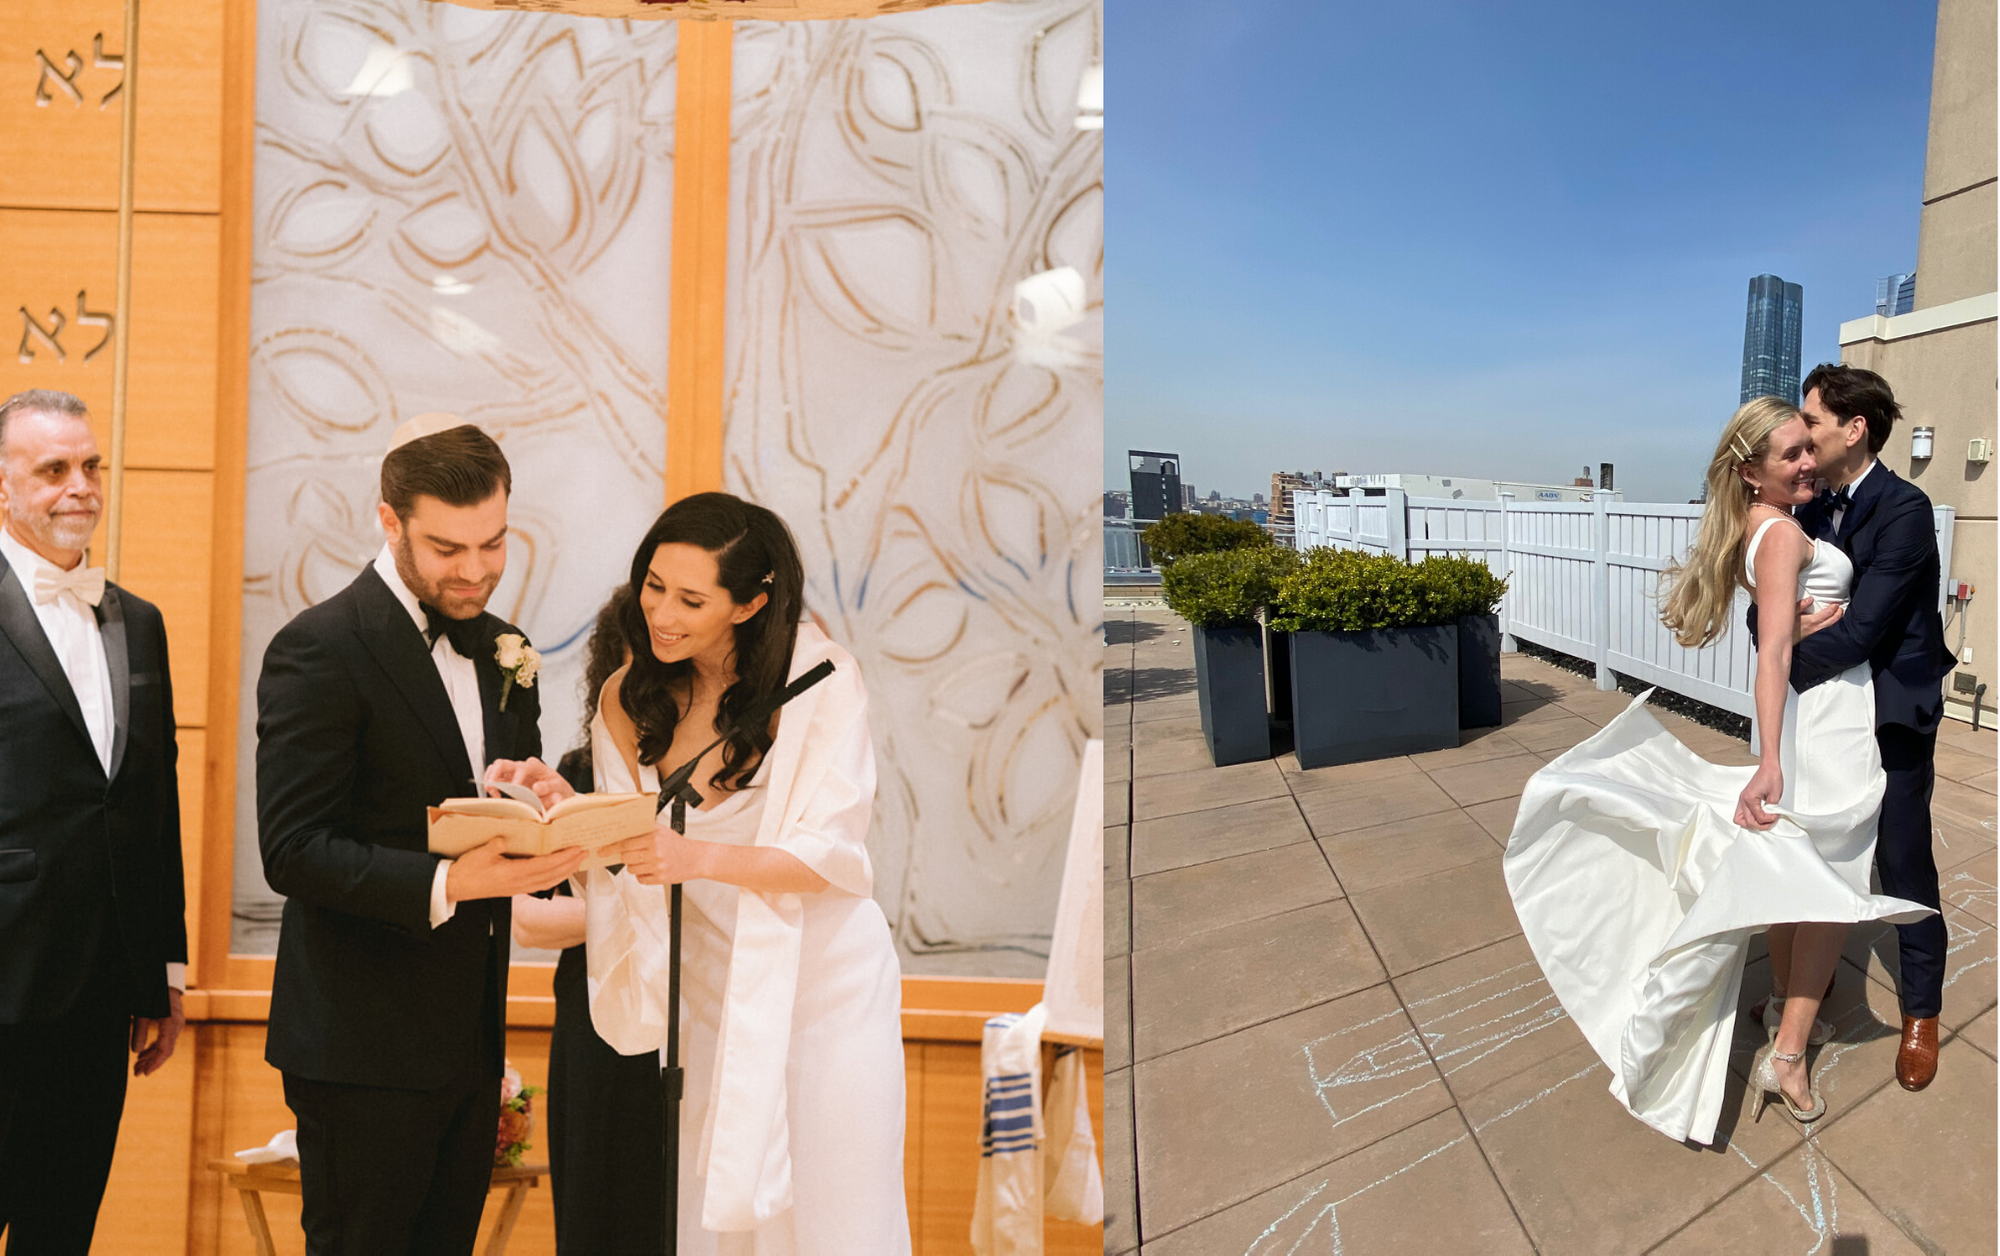 On the left, a bride and groom read from the Torah at their Temple. On the right, a bride and groom embrace on a rooftop. The sky is blue and the wind blows her white dress up slightly.